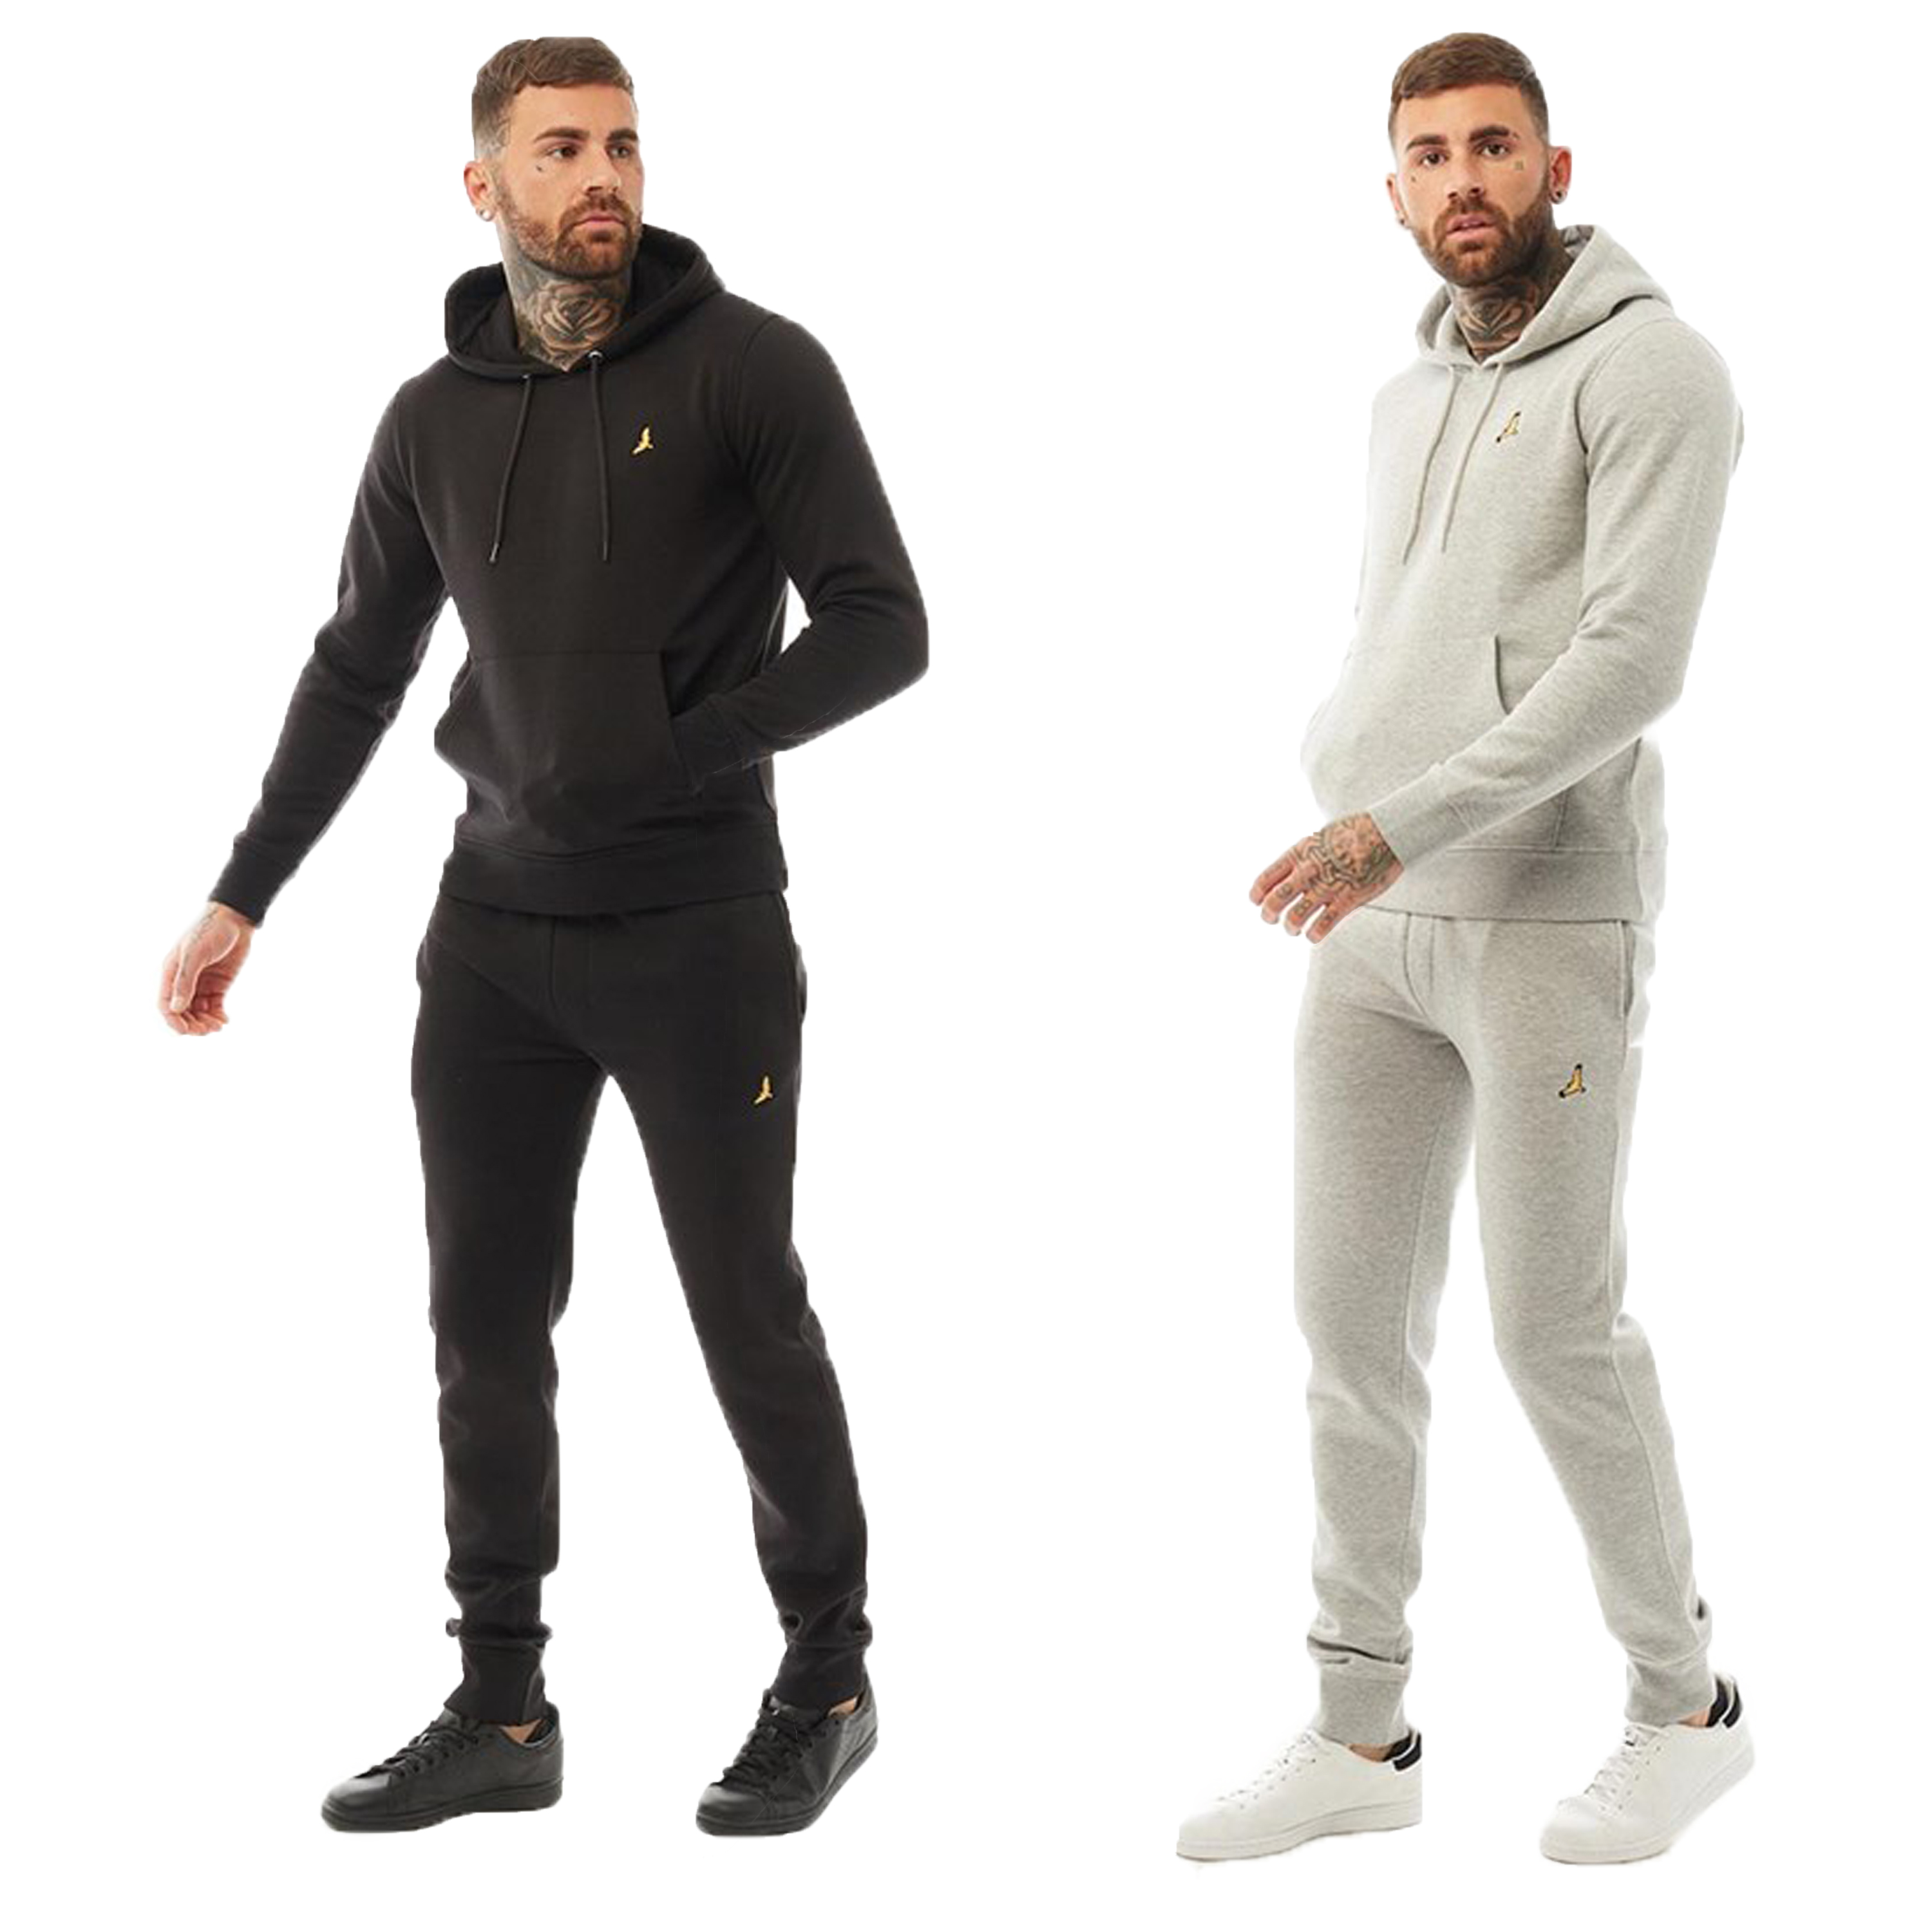 Mens-Brave-Soul-2-Pack-Over-The-Head-Hoodie-Shorts-Brushed-Back-Fleece-Fashion thumbnail 3